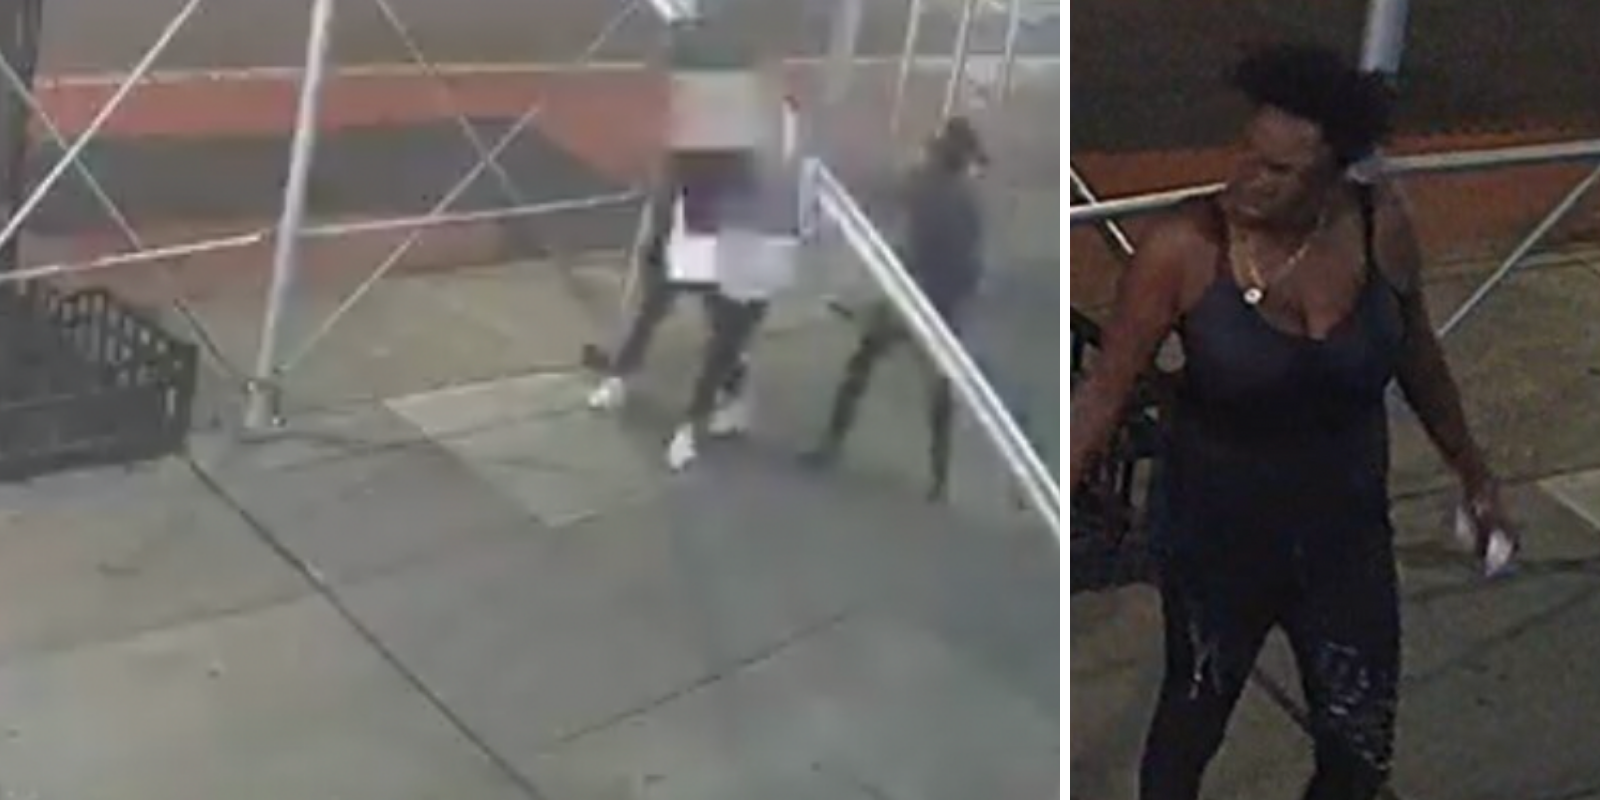 Suspect arrested and charged after brutal hammer attack on Asian women in New York City